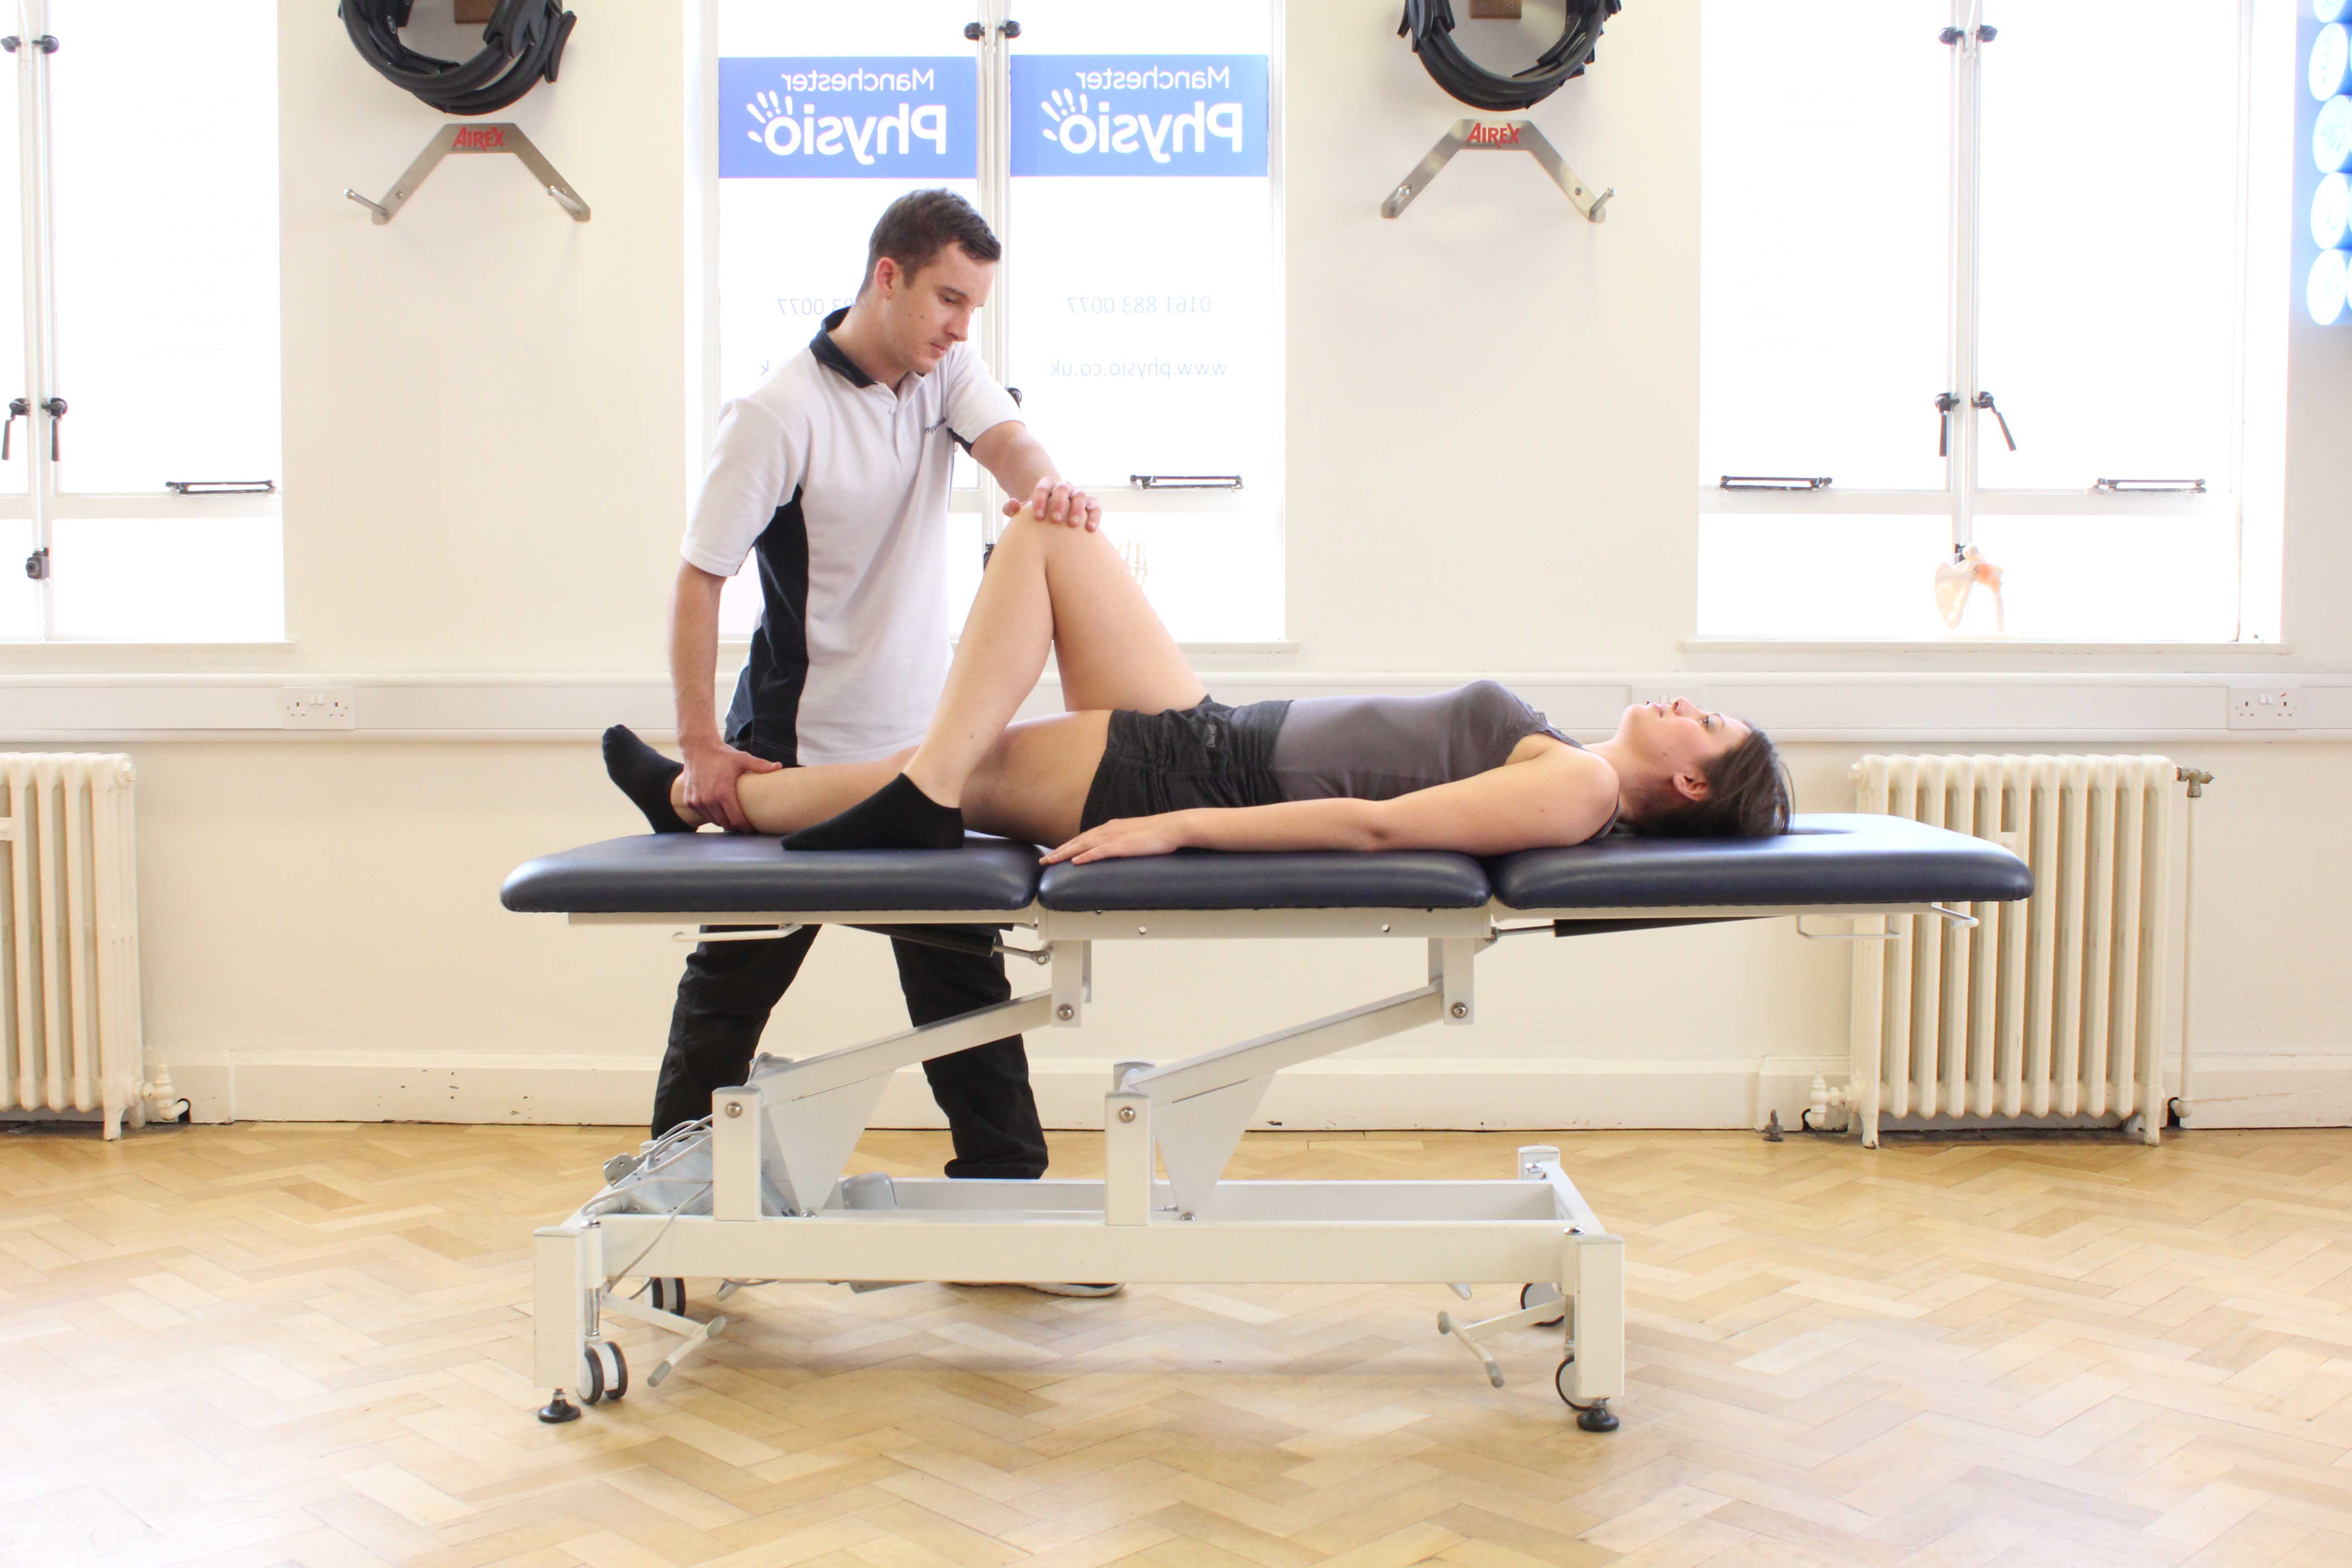 Passive stretches of the groin and pelvic muscles with supervision from a MSK therapist